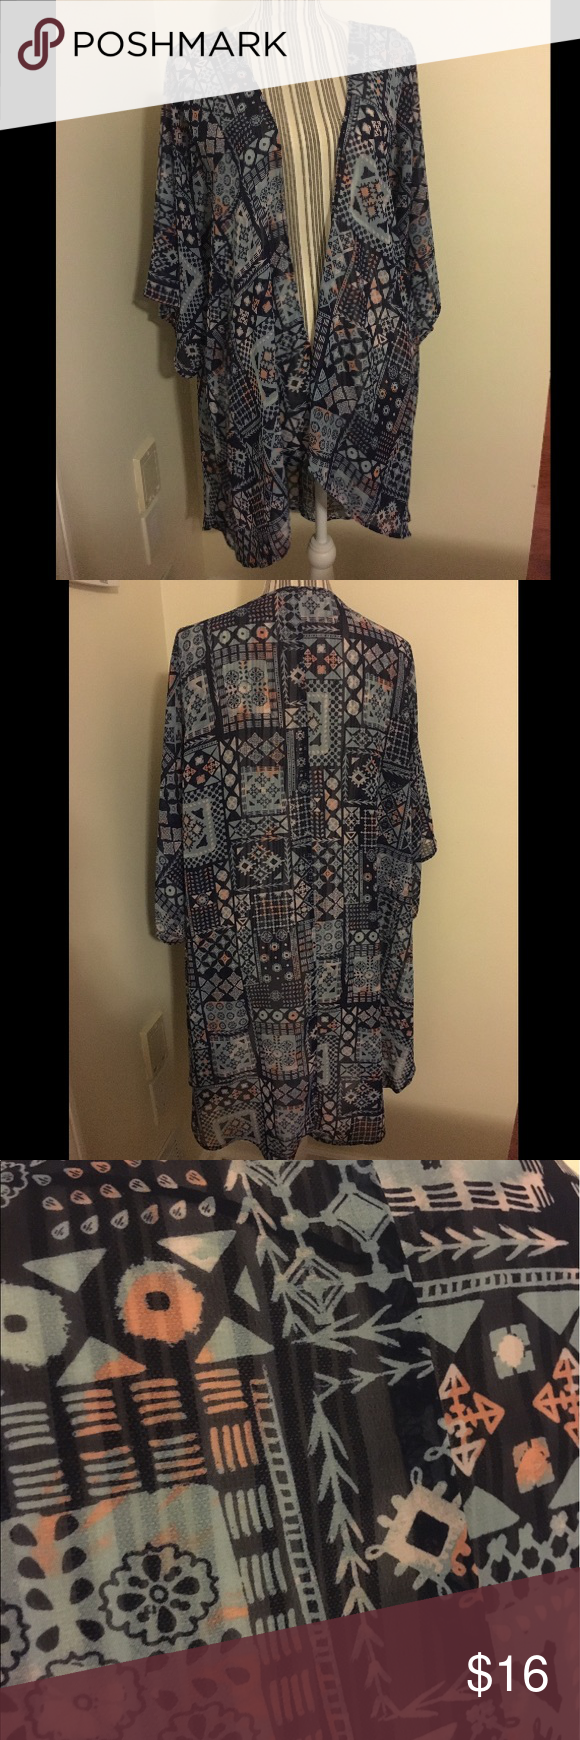 Blue and pink patterned kimono beach cover up Super cute and light material. Loose fitting and flowing. Perfect as a light cover for the sun or beach, comfy. Can fit bigger or smaller sizes due to how loose it is. Worn once, in excellent condition. Color is like a blue and light pink or peach. Mudd Tops